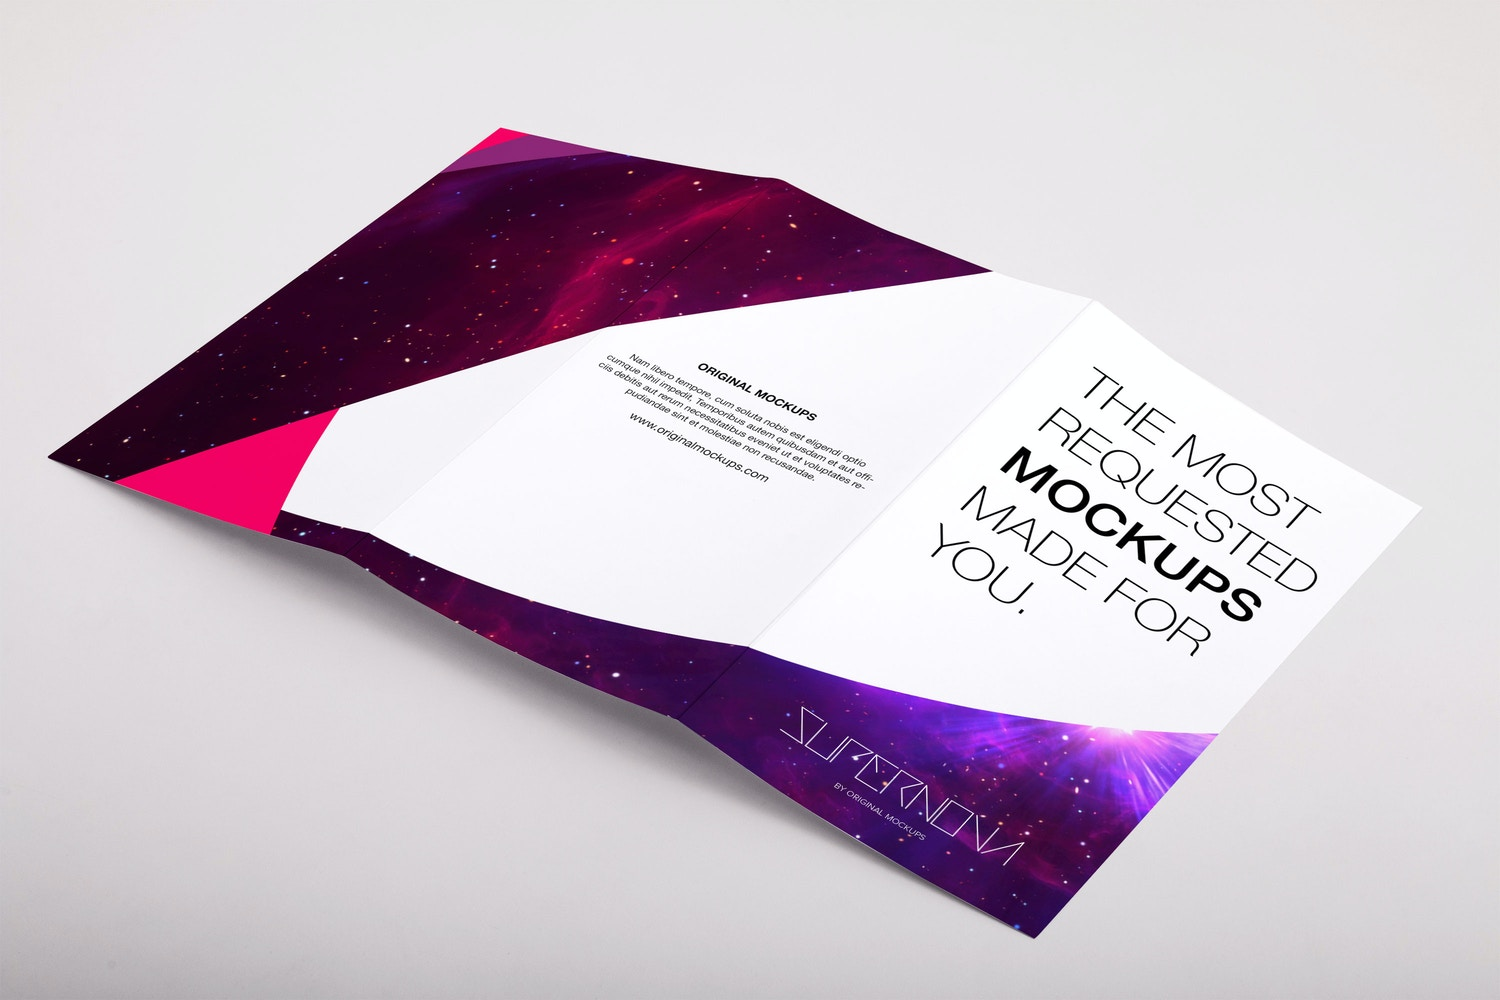 Legal Trifold Brochure PSD Mockup 04 by Original Mockups on Original Mockups